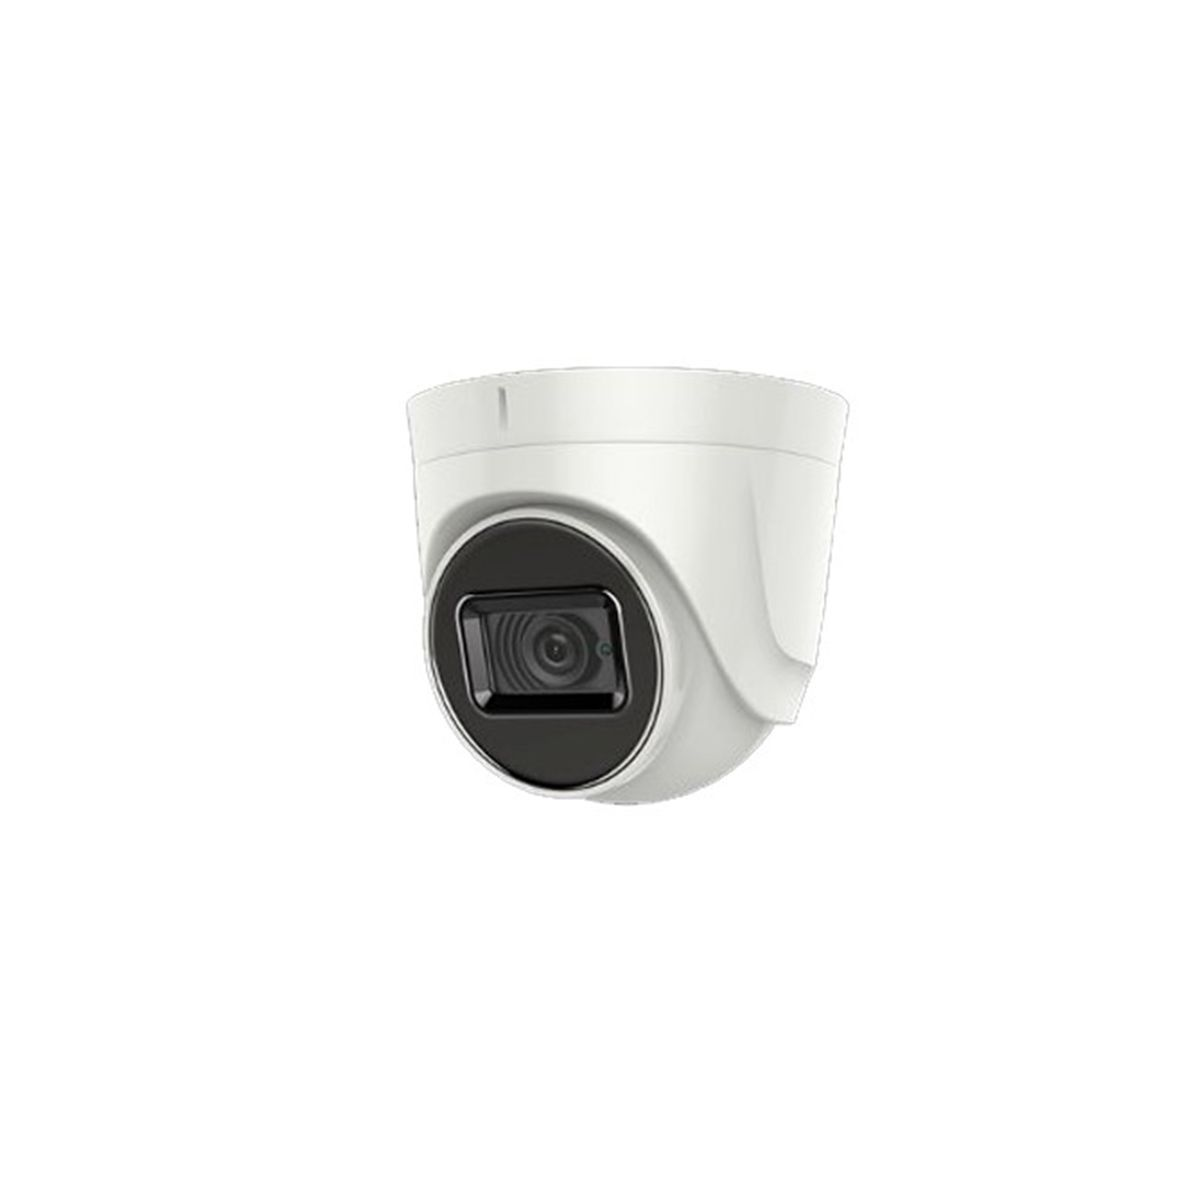 Cámara Hikvision Turbo HD Tipo domo DS-2CE76U1T-ITPF 2.8MM